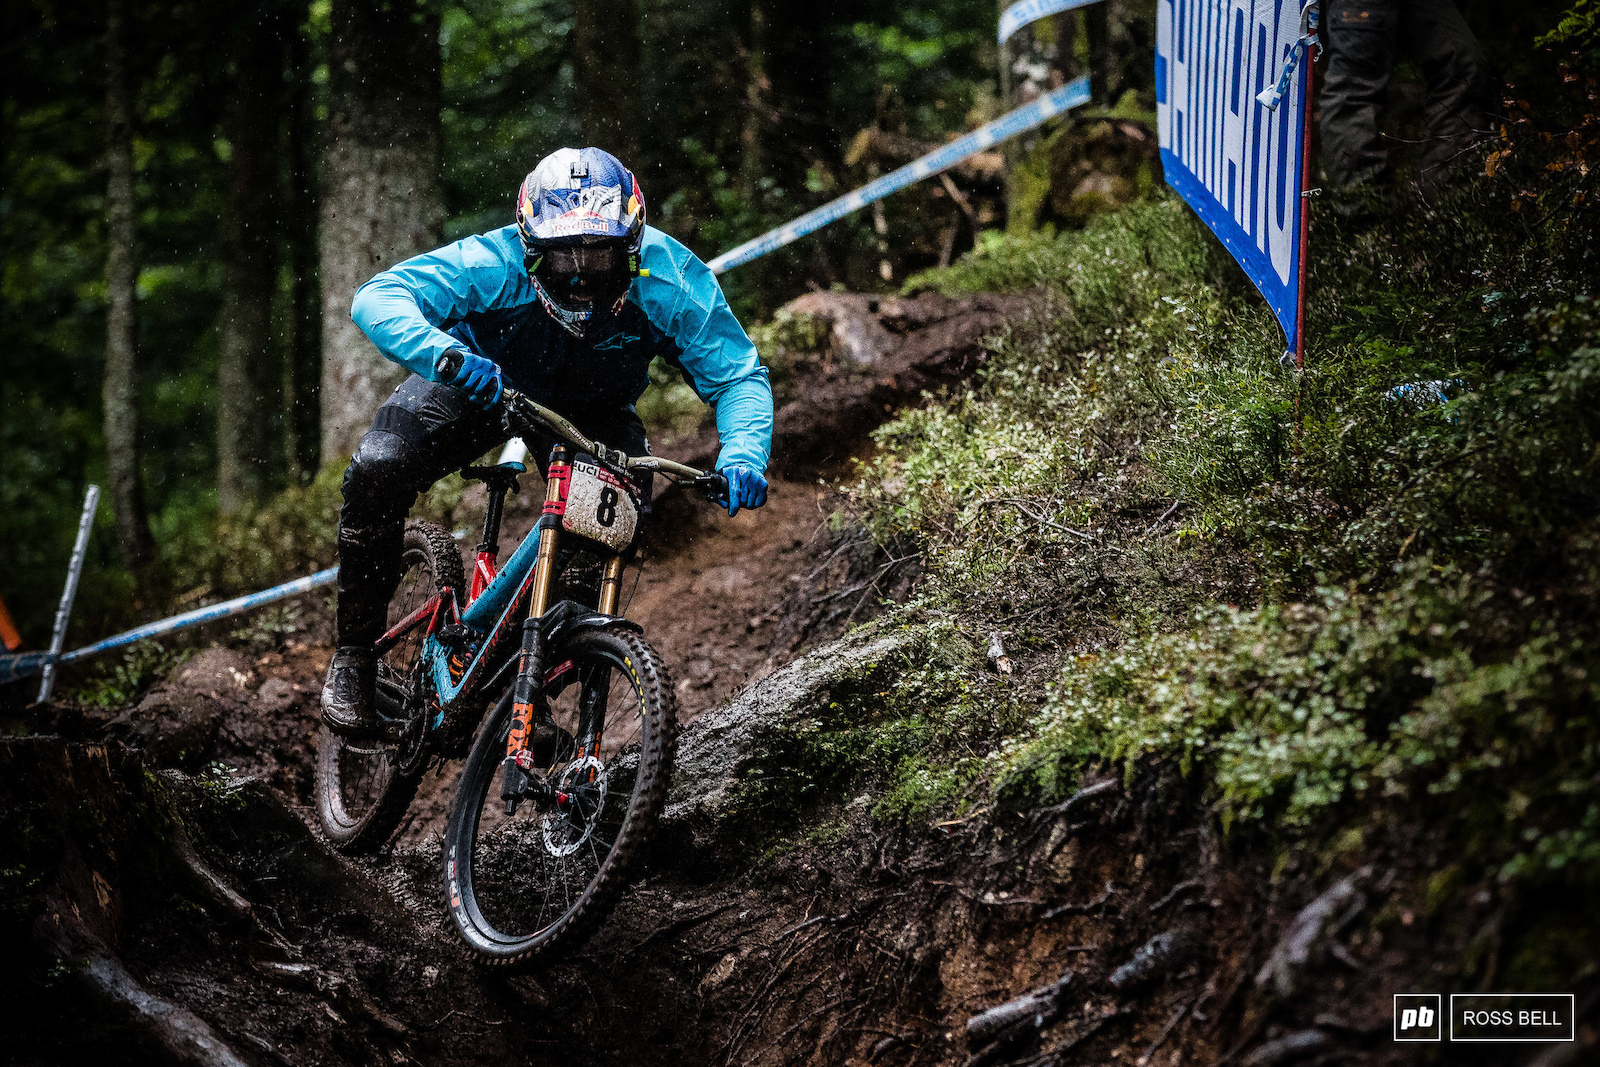 It s been so good to see Brook Macdonald battling for podiums once again his aggresive riding style is a joy to watch.